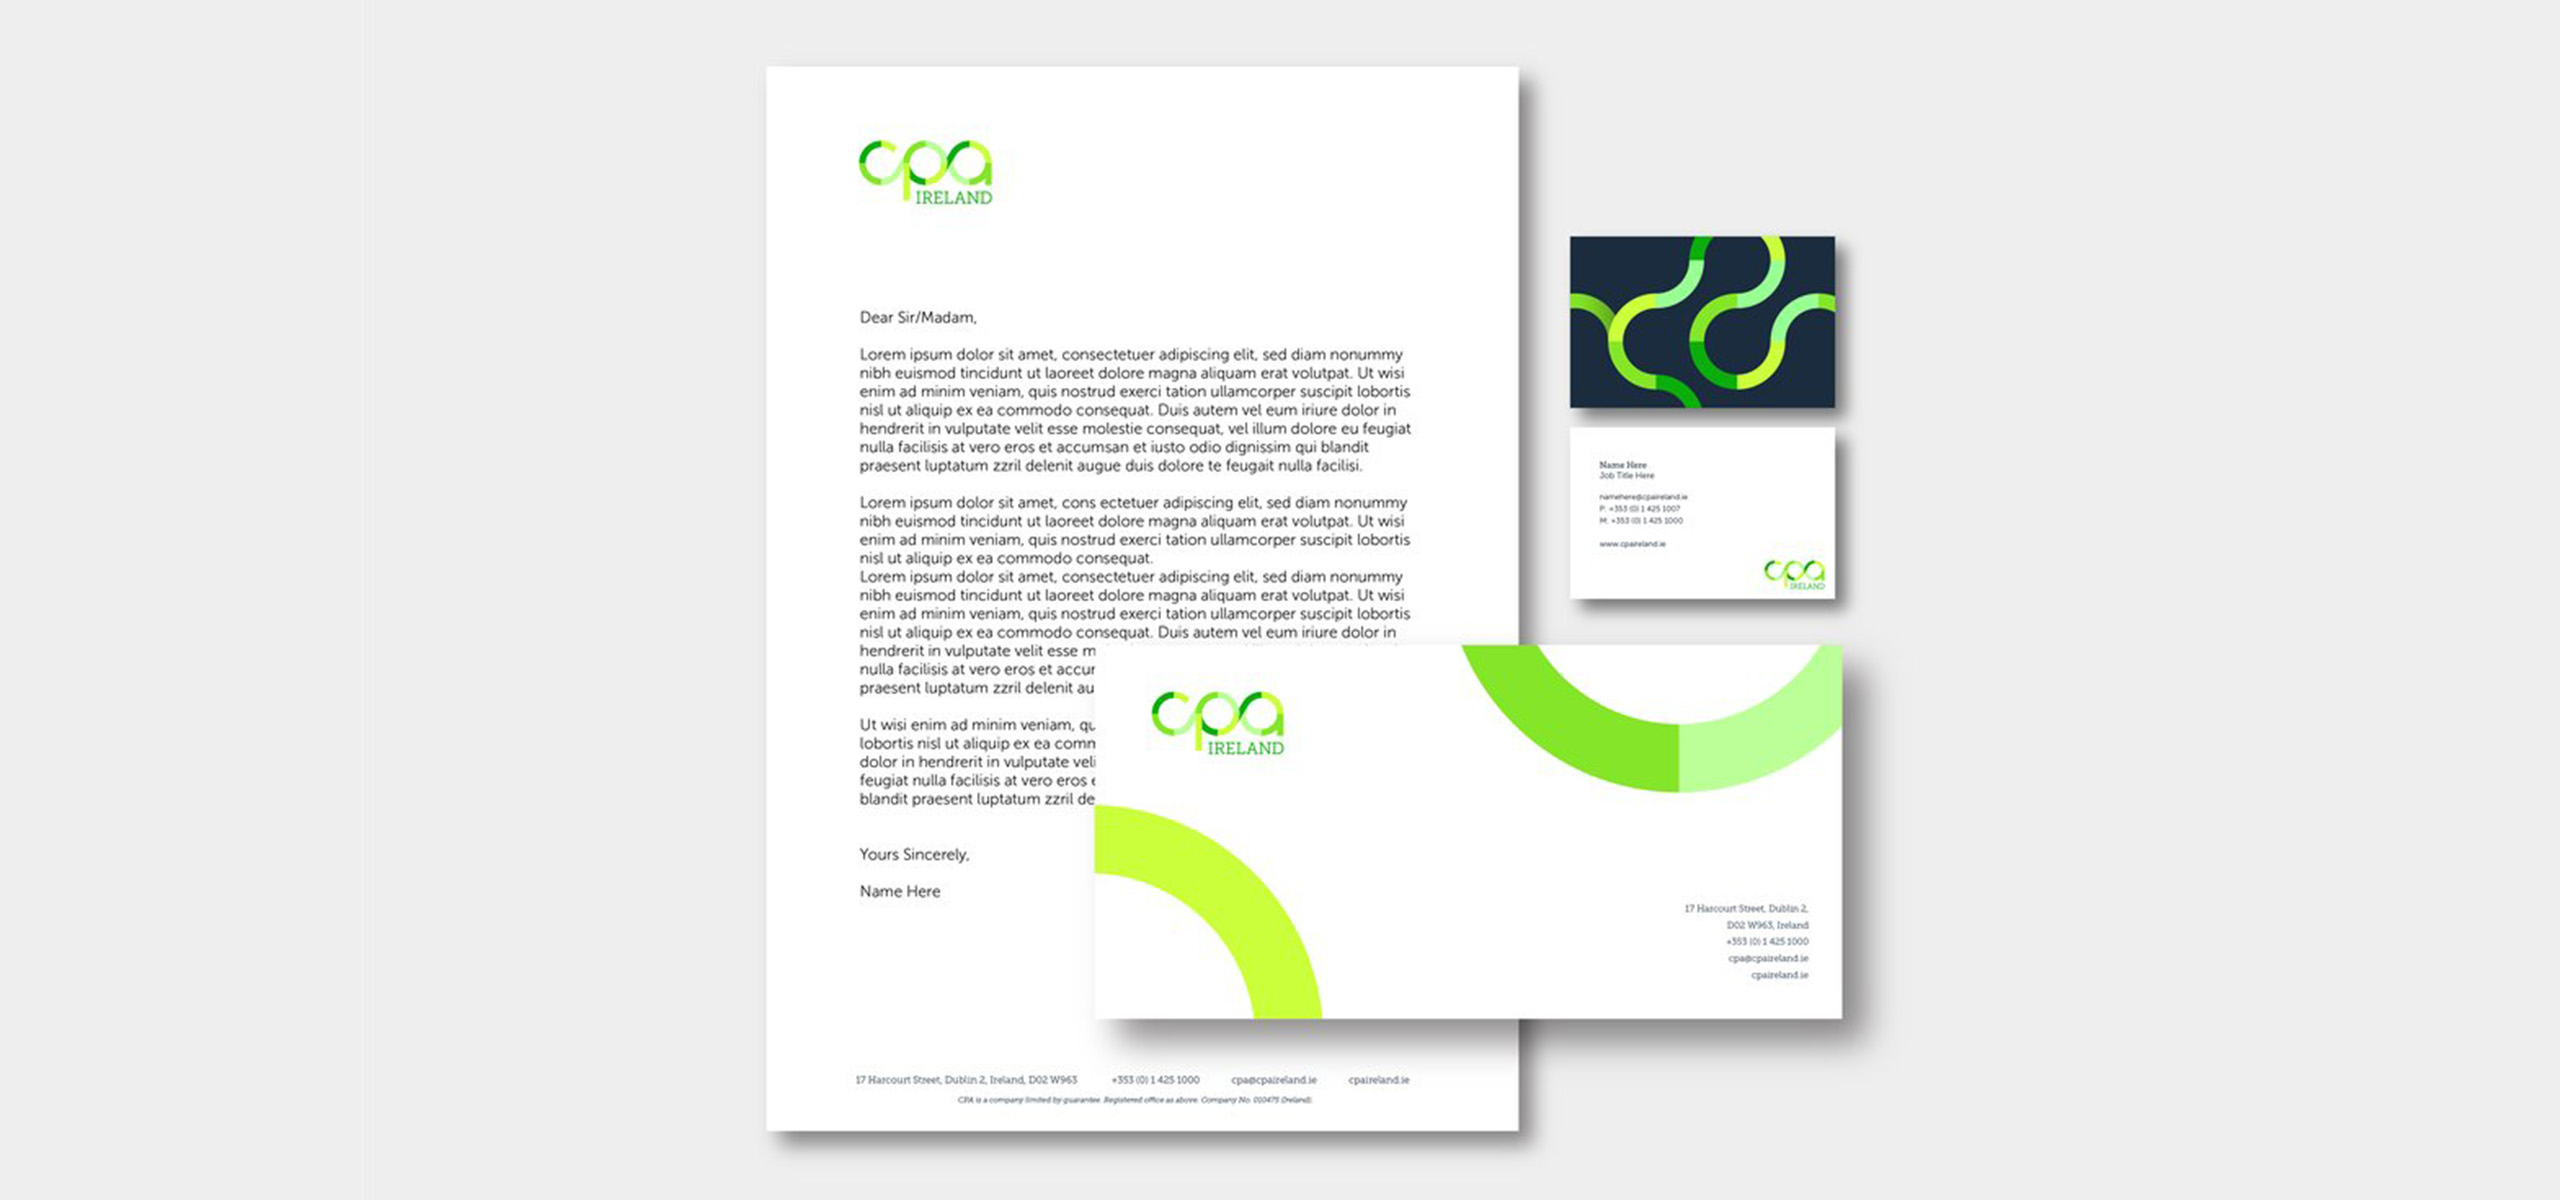 Stationery for Irish accountancy brand CPA, designed by White Bear Studio